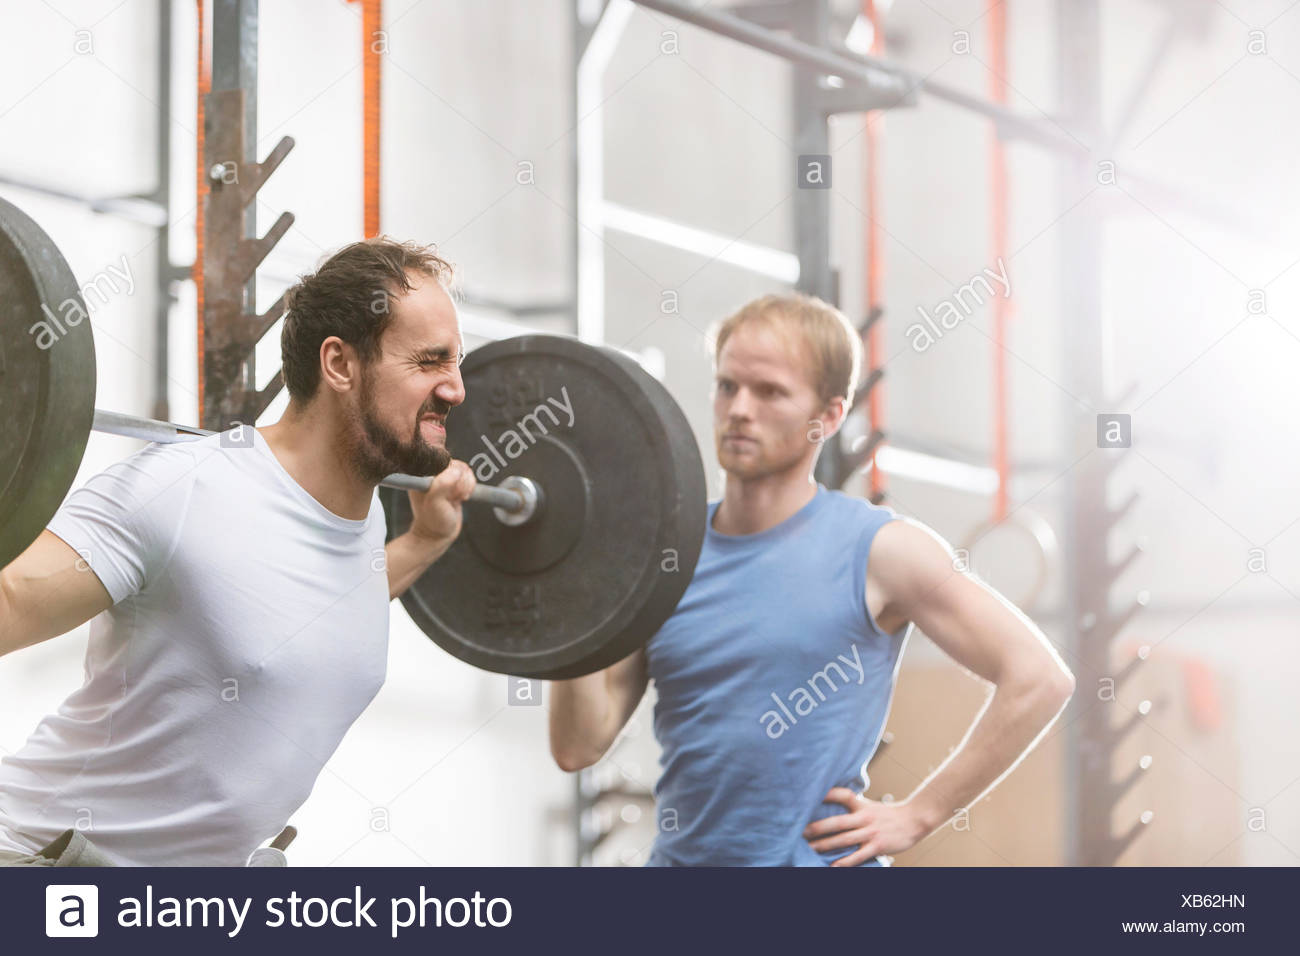 Man assisting friend in lifting barbell at crossfit gym - Stock Image